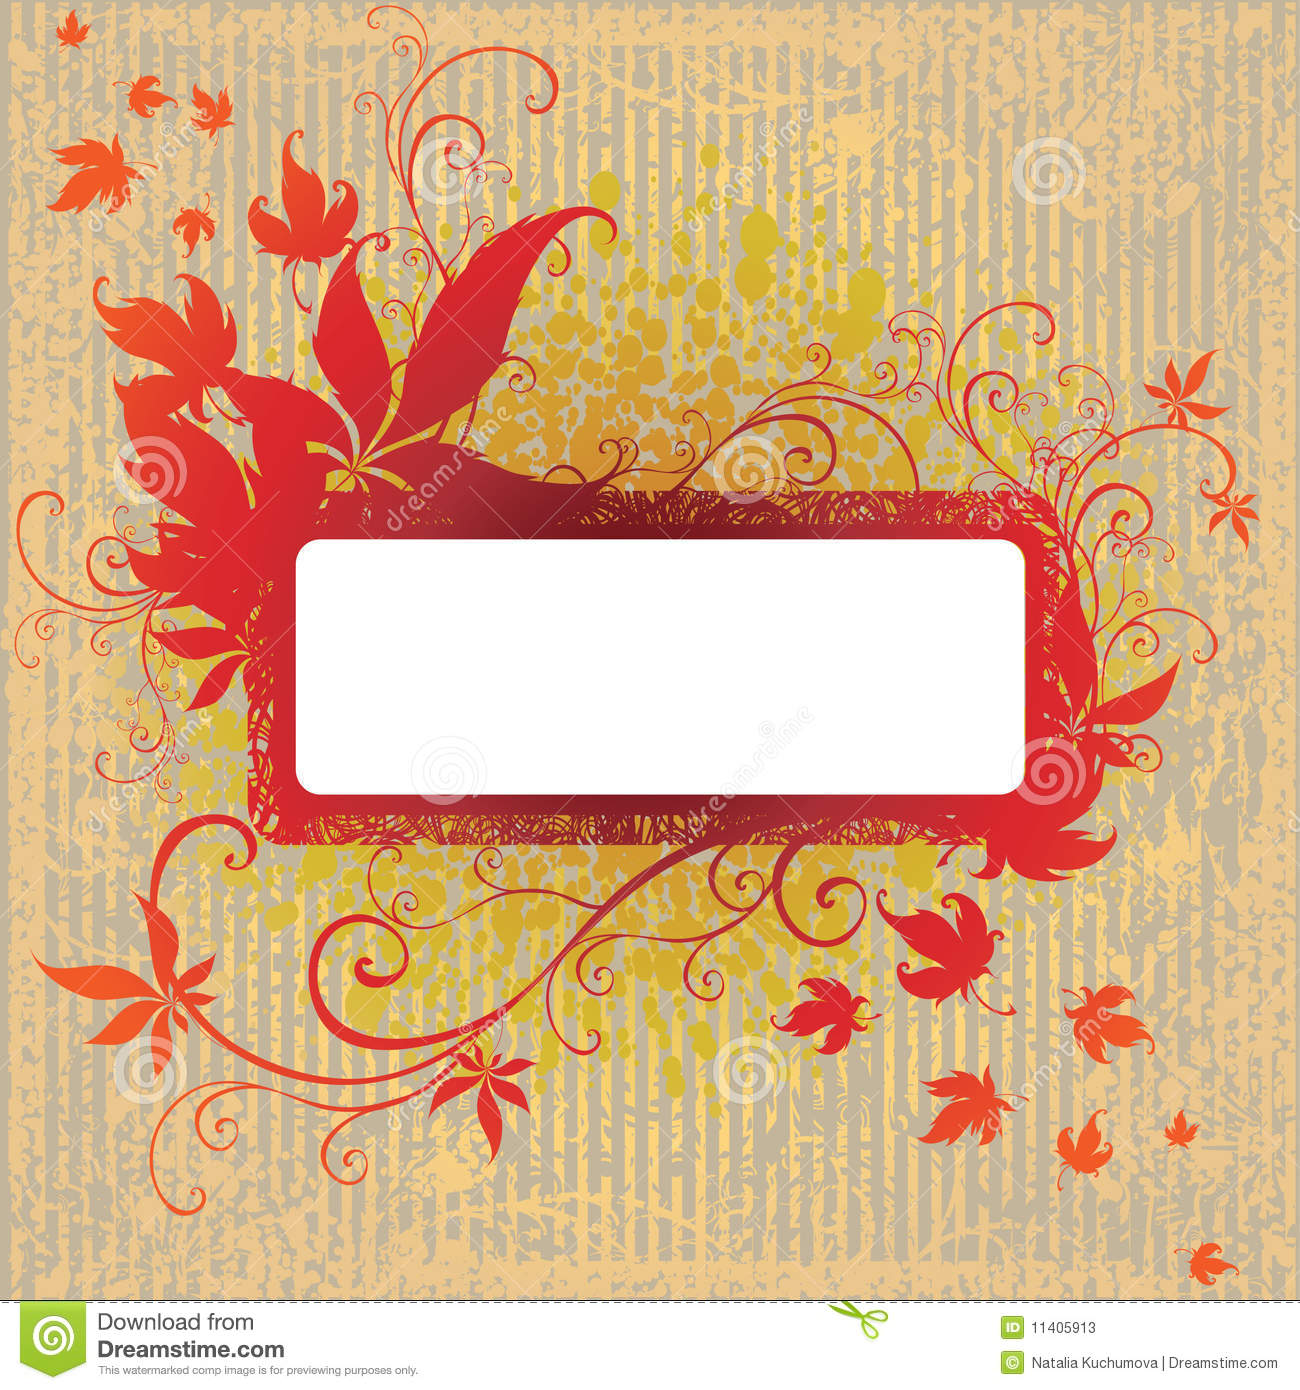 Grunge vector frame with Autumn Leafs. Thank